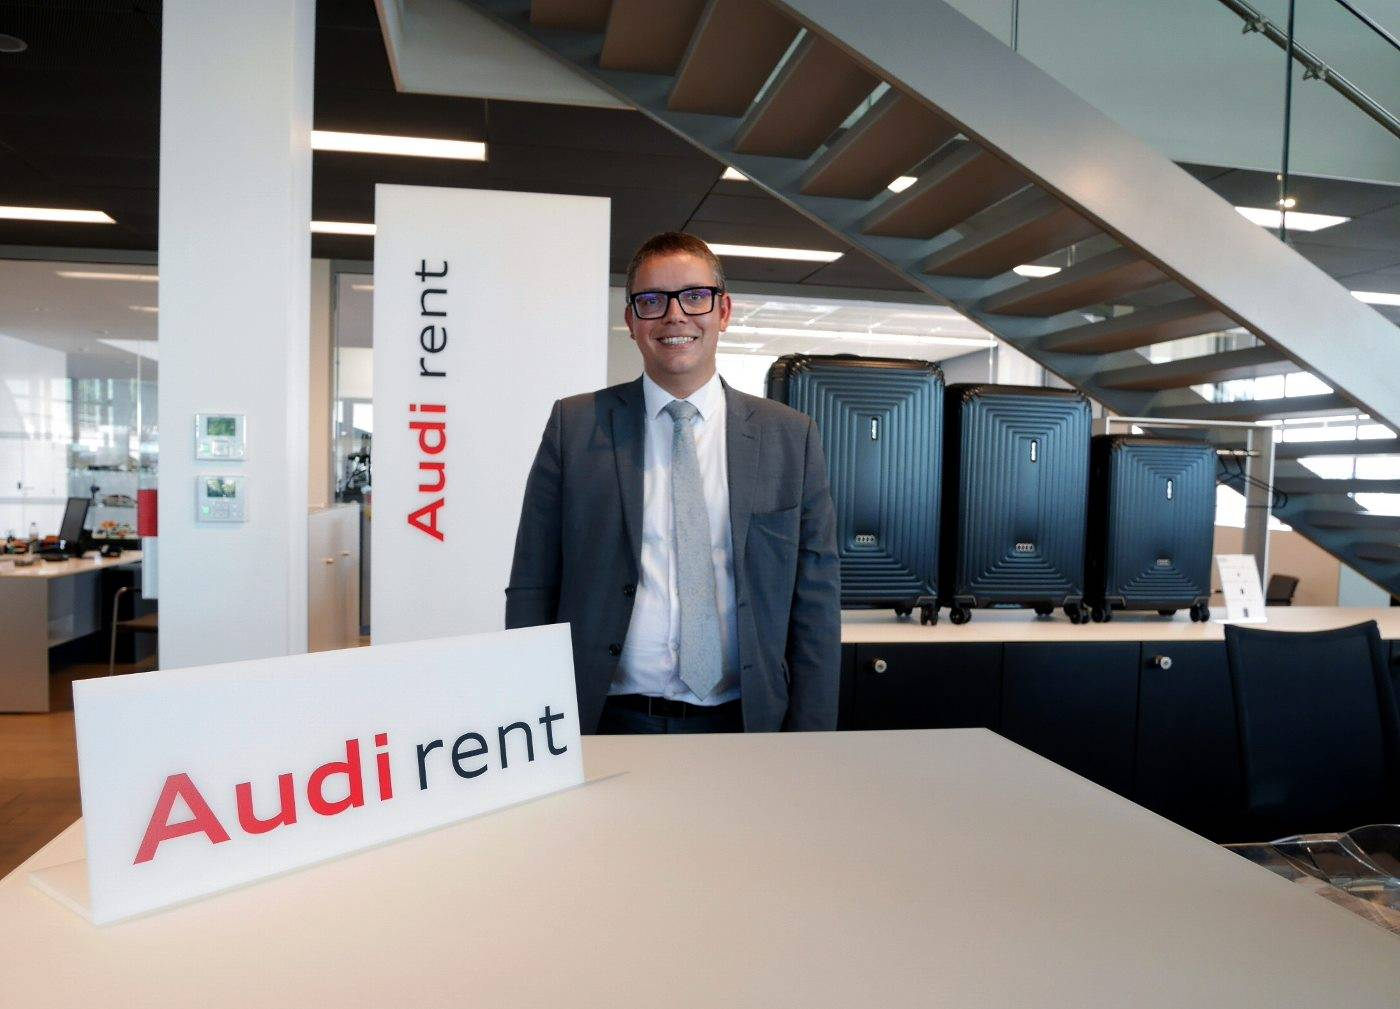 Agence Audi rent Bauer Paris Roissy CDG location